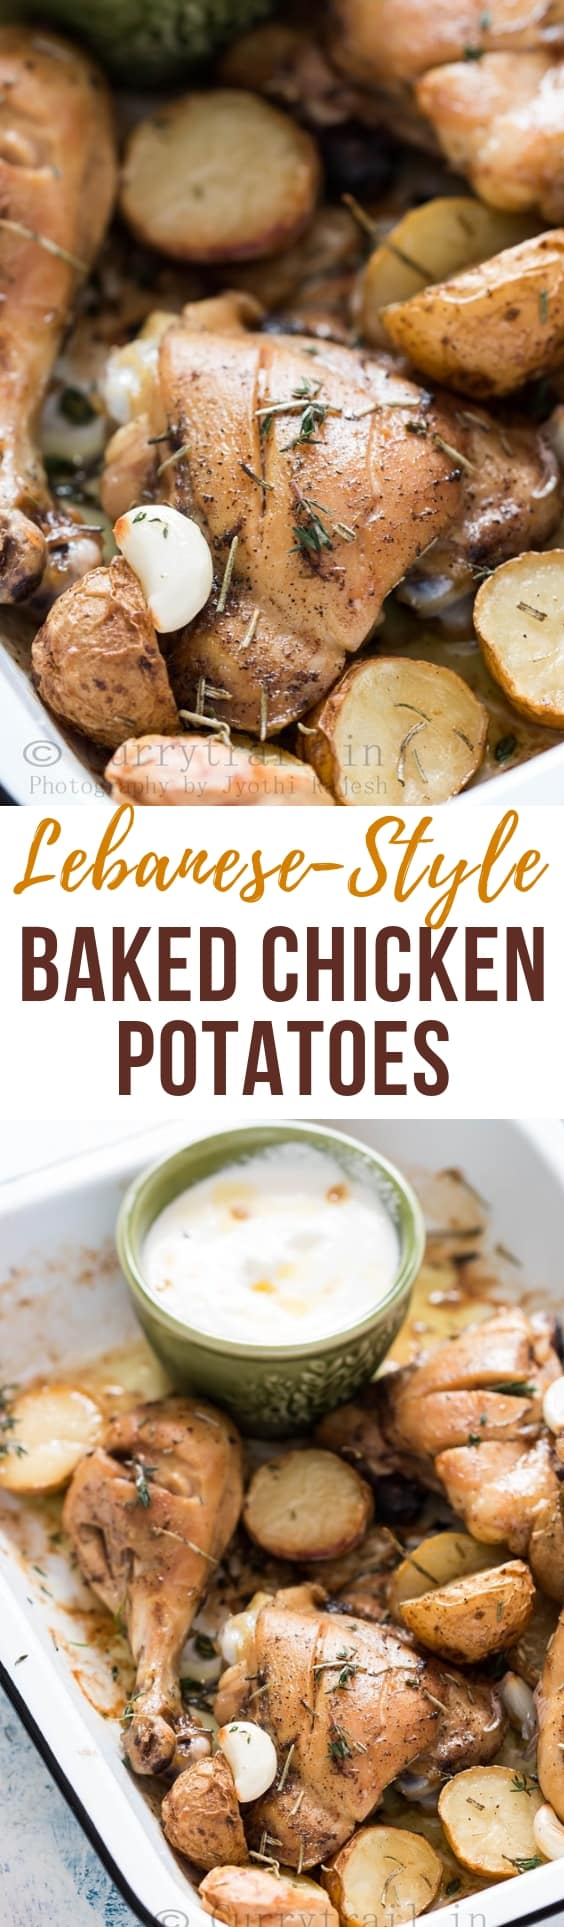 Lebanese style Baked chicken and potatoes with text overlay